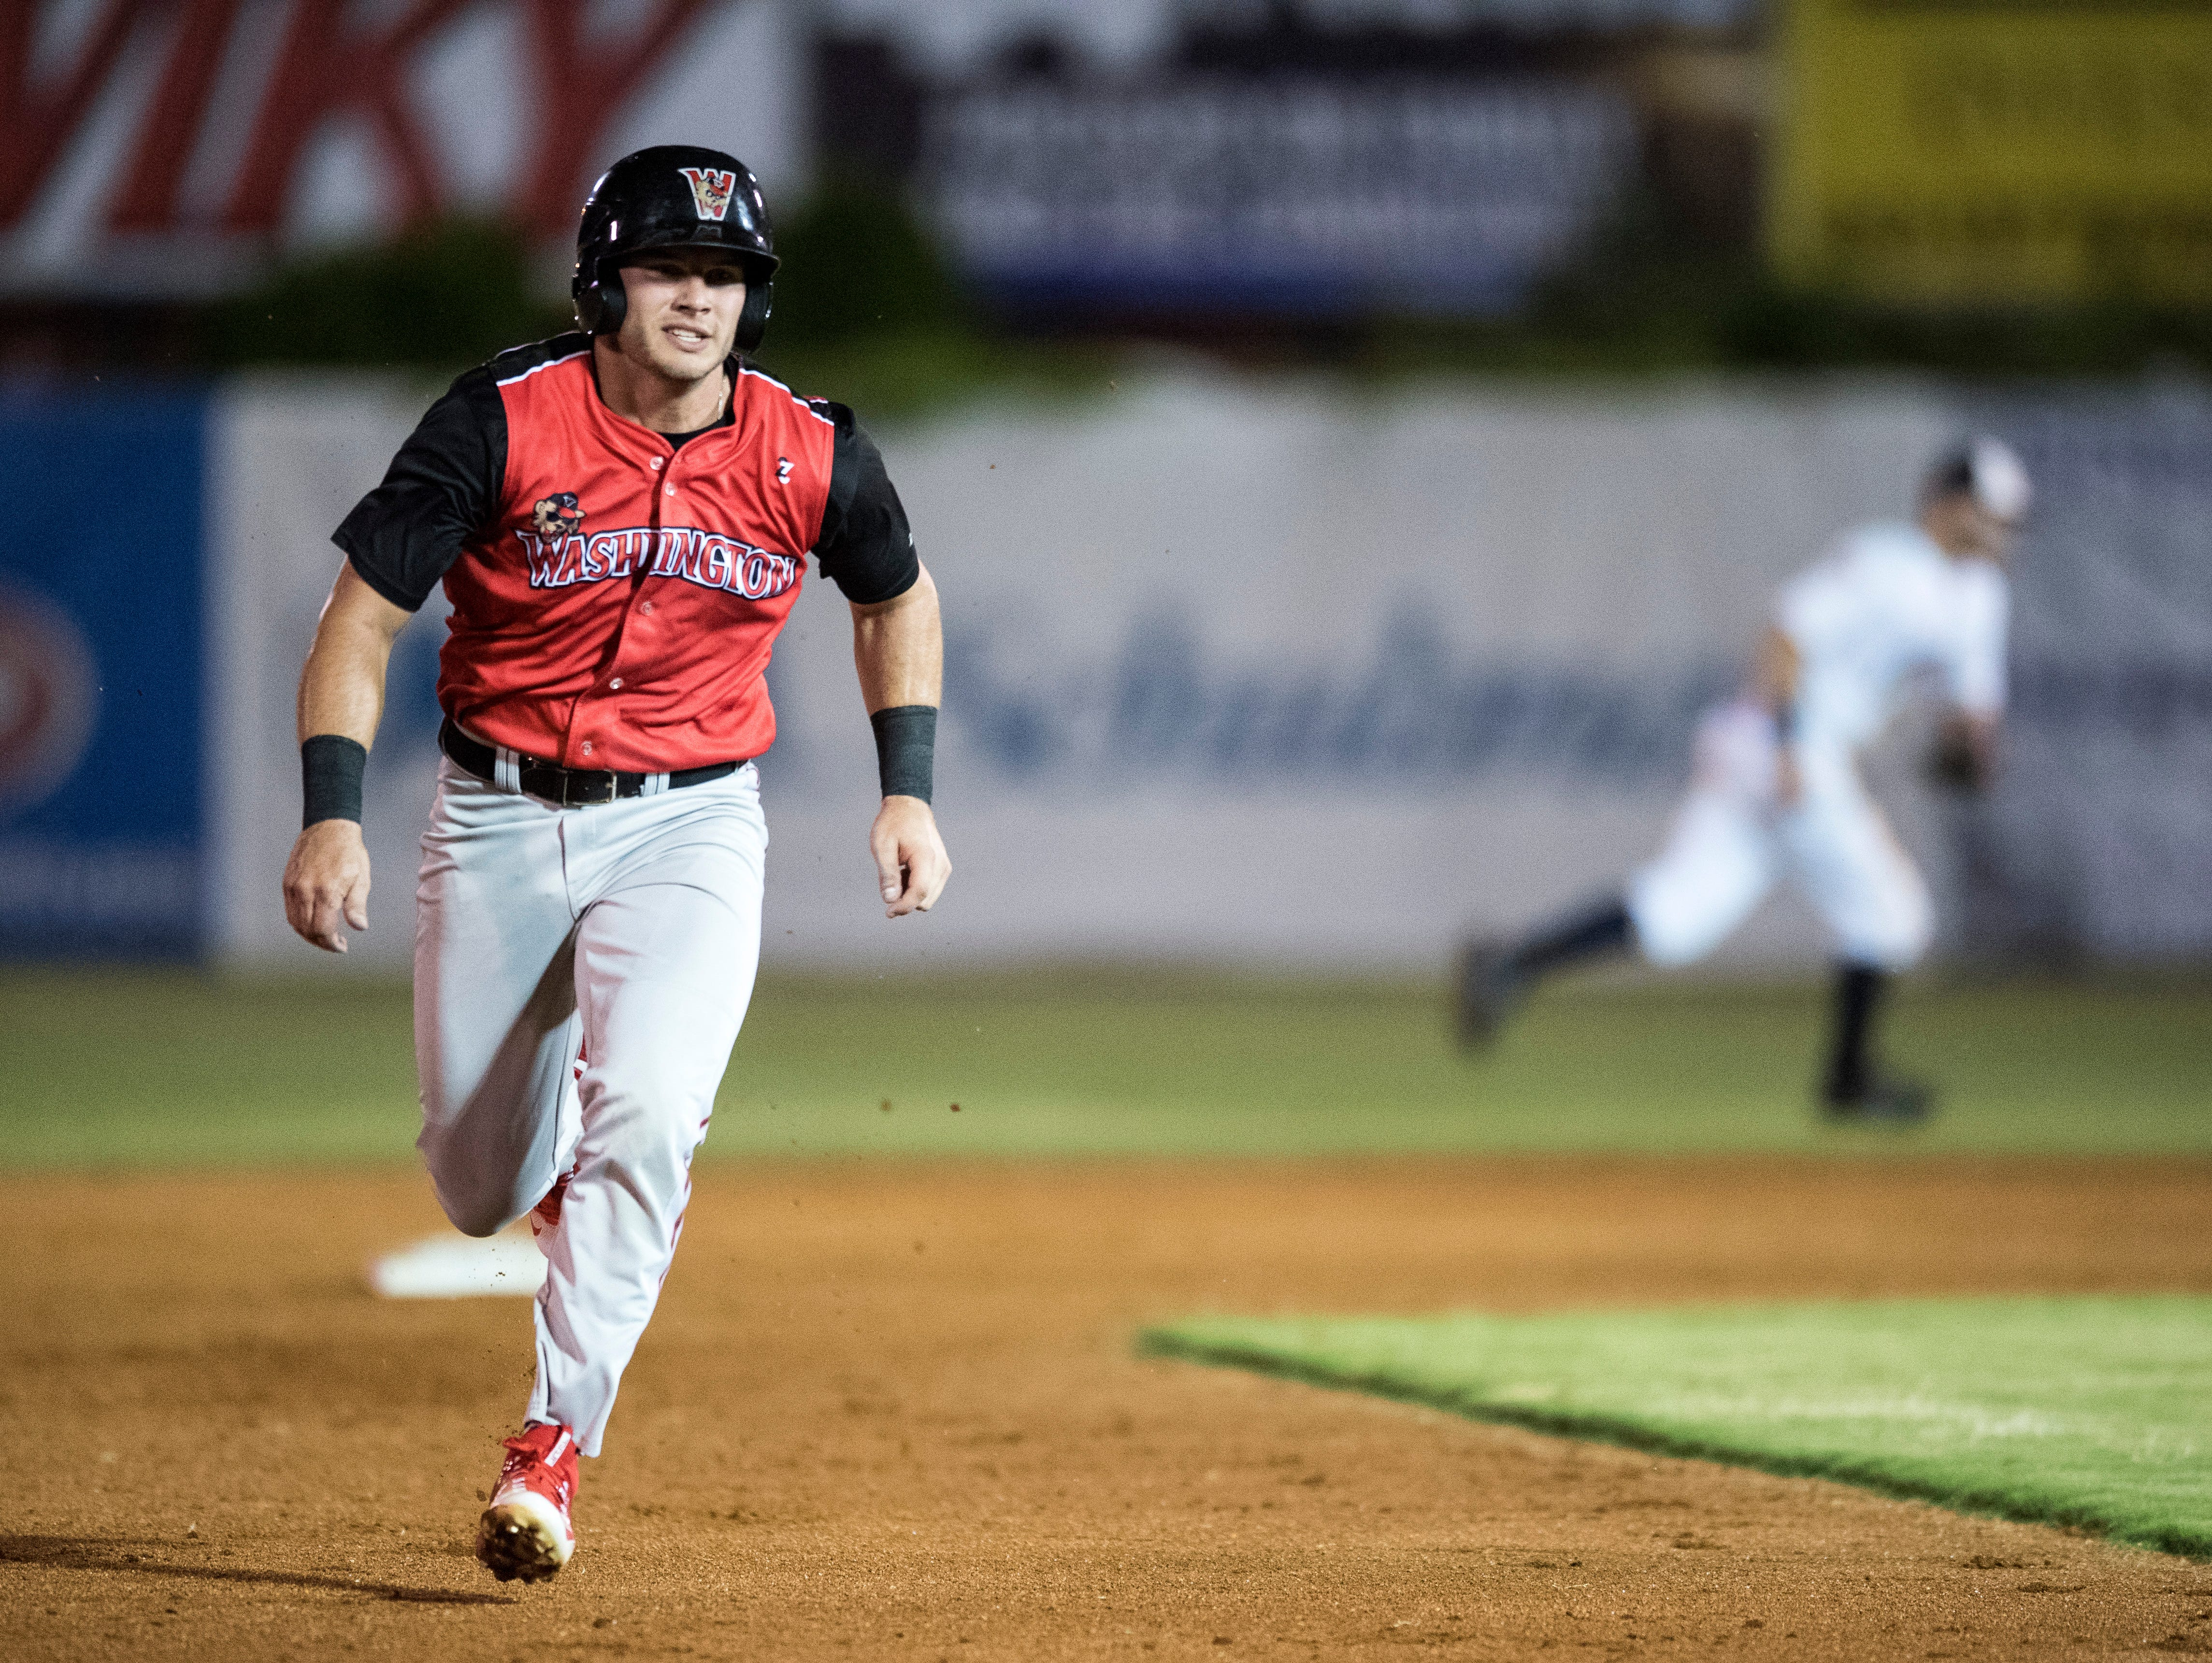 Washington's Dom Lero  (7) races to third base during game one of the Frontier League Division Series at Bosse Field against the Evansville Otters Tuesday, September 4, 2018.